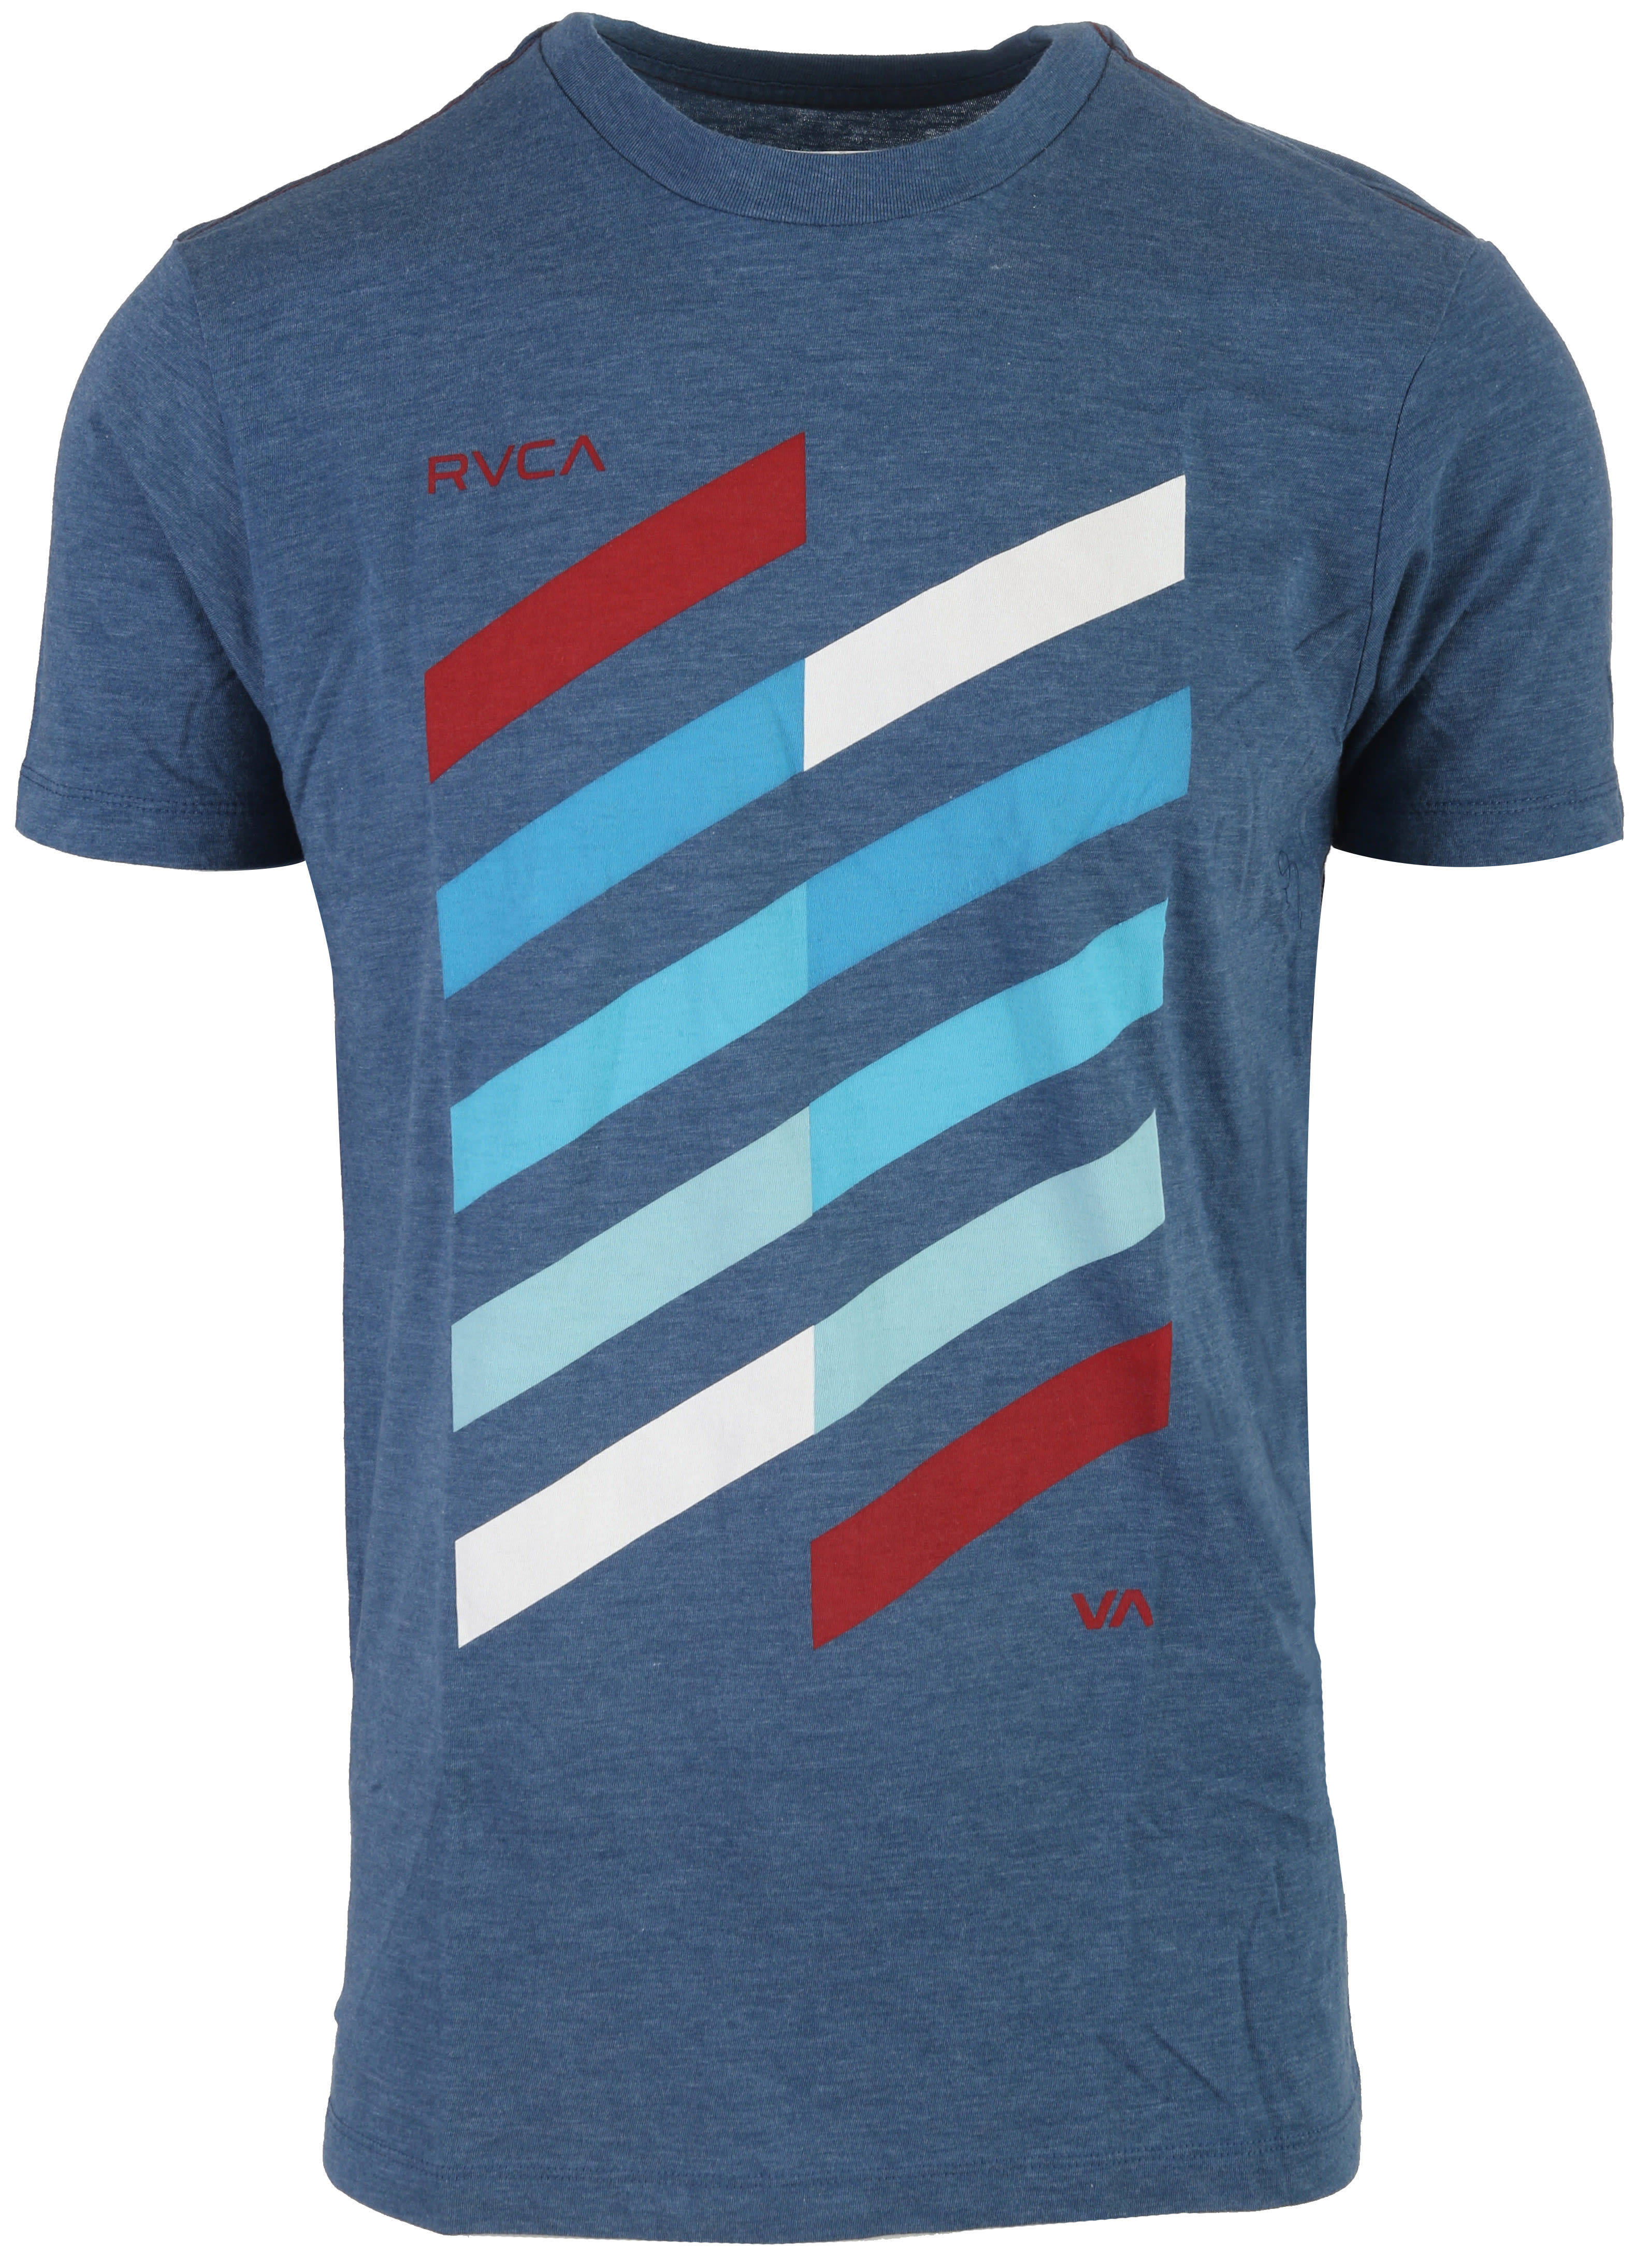 On sale rvca diagonal t shirt up to 45 off for Rvca t shirt dress